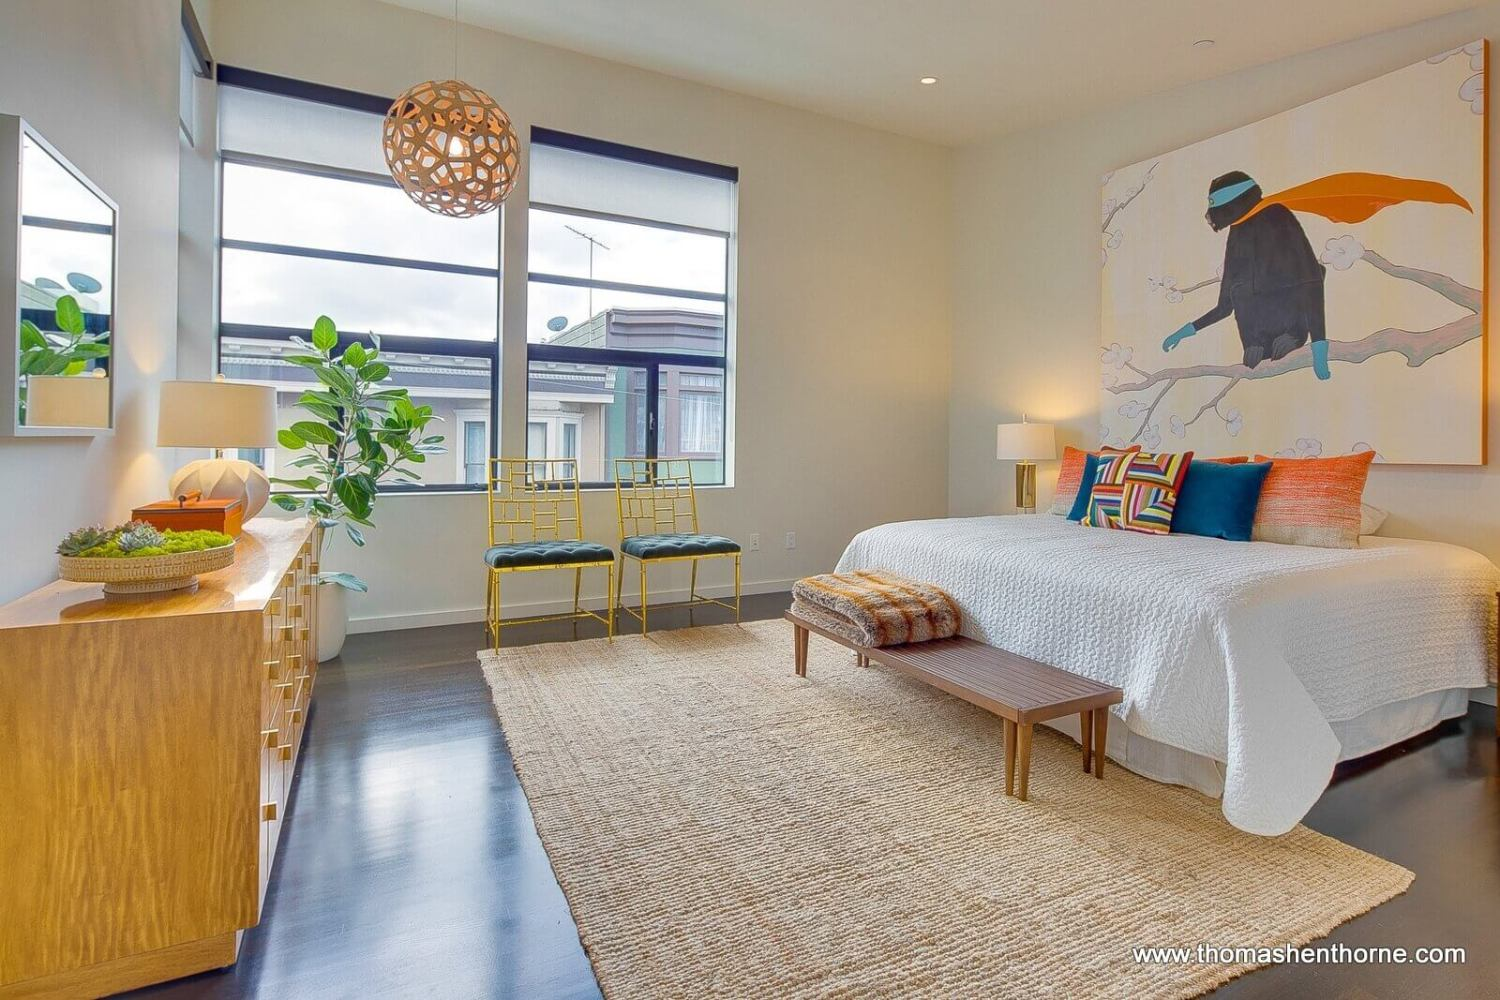 Bedroom with windows looking out onto street